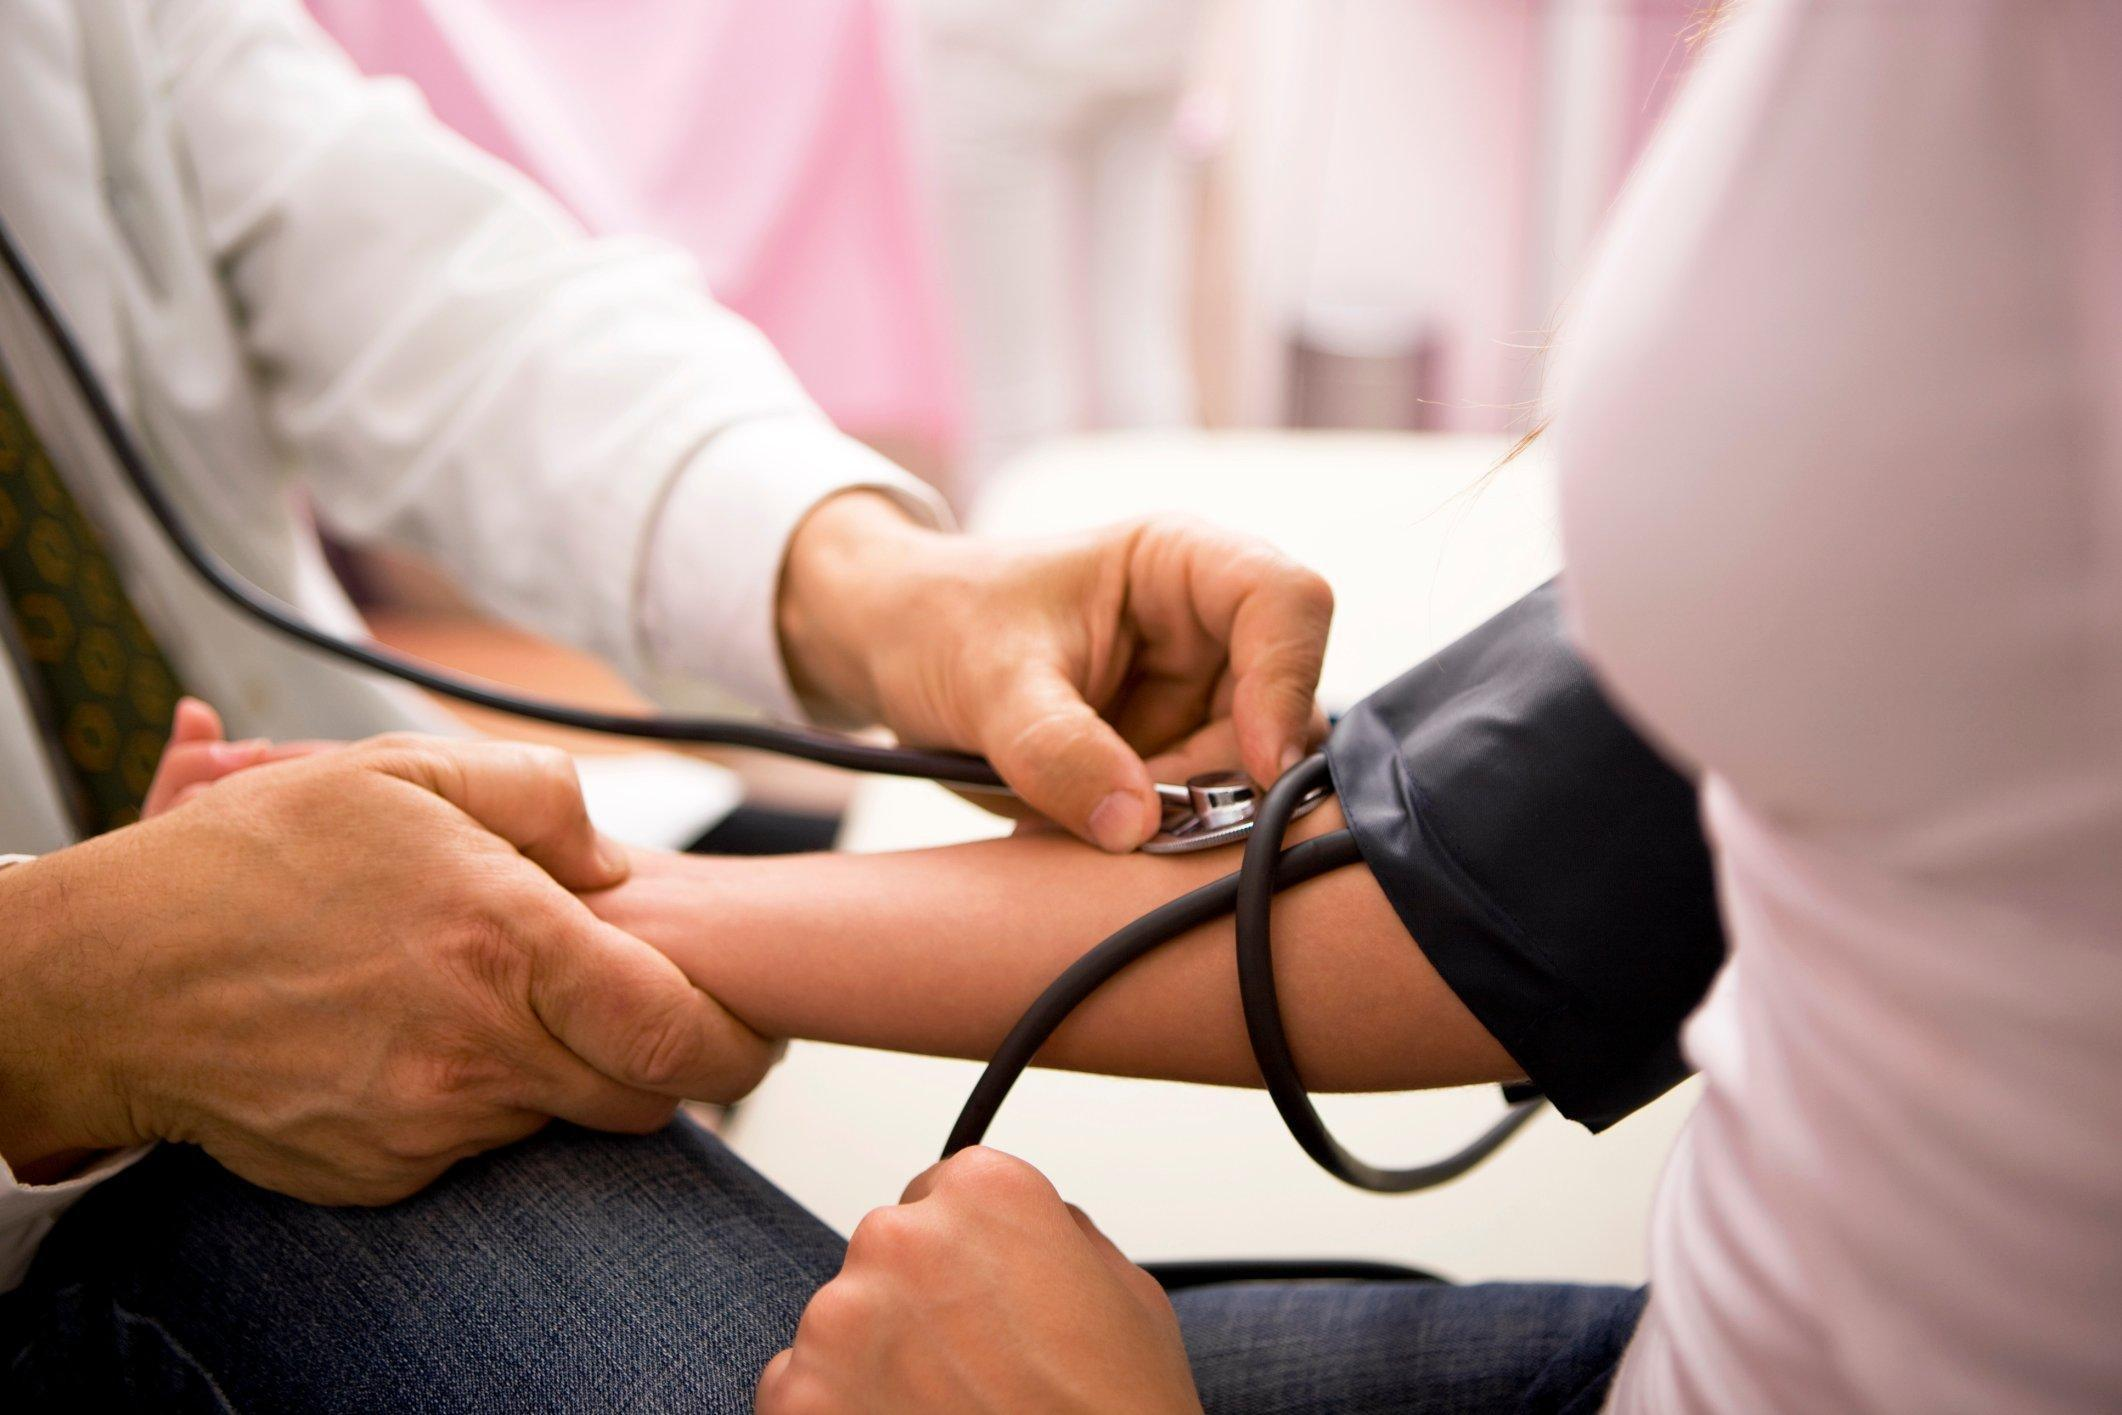 6 Best Tips To Lower Blood Pressure When You Have Diabetes